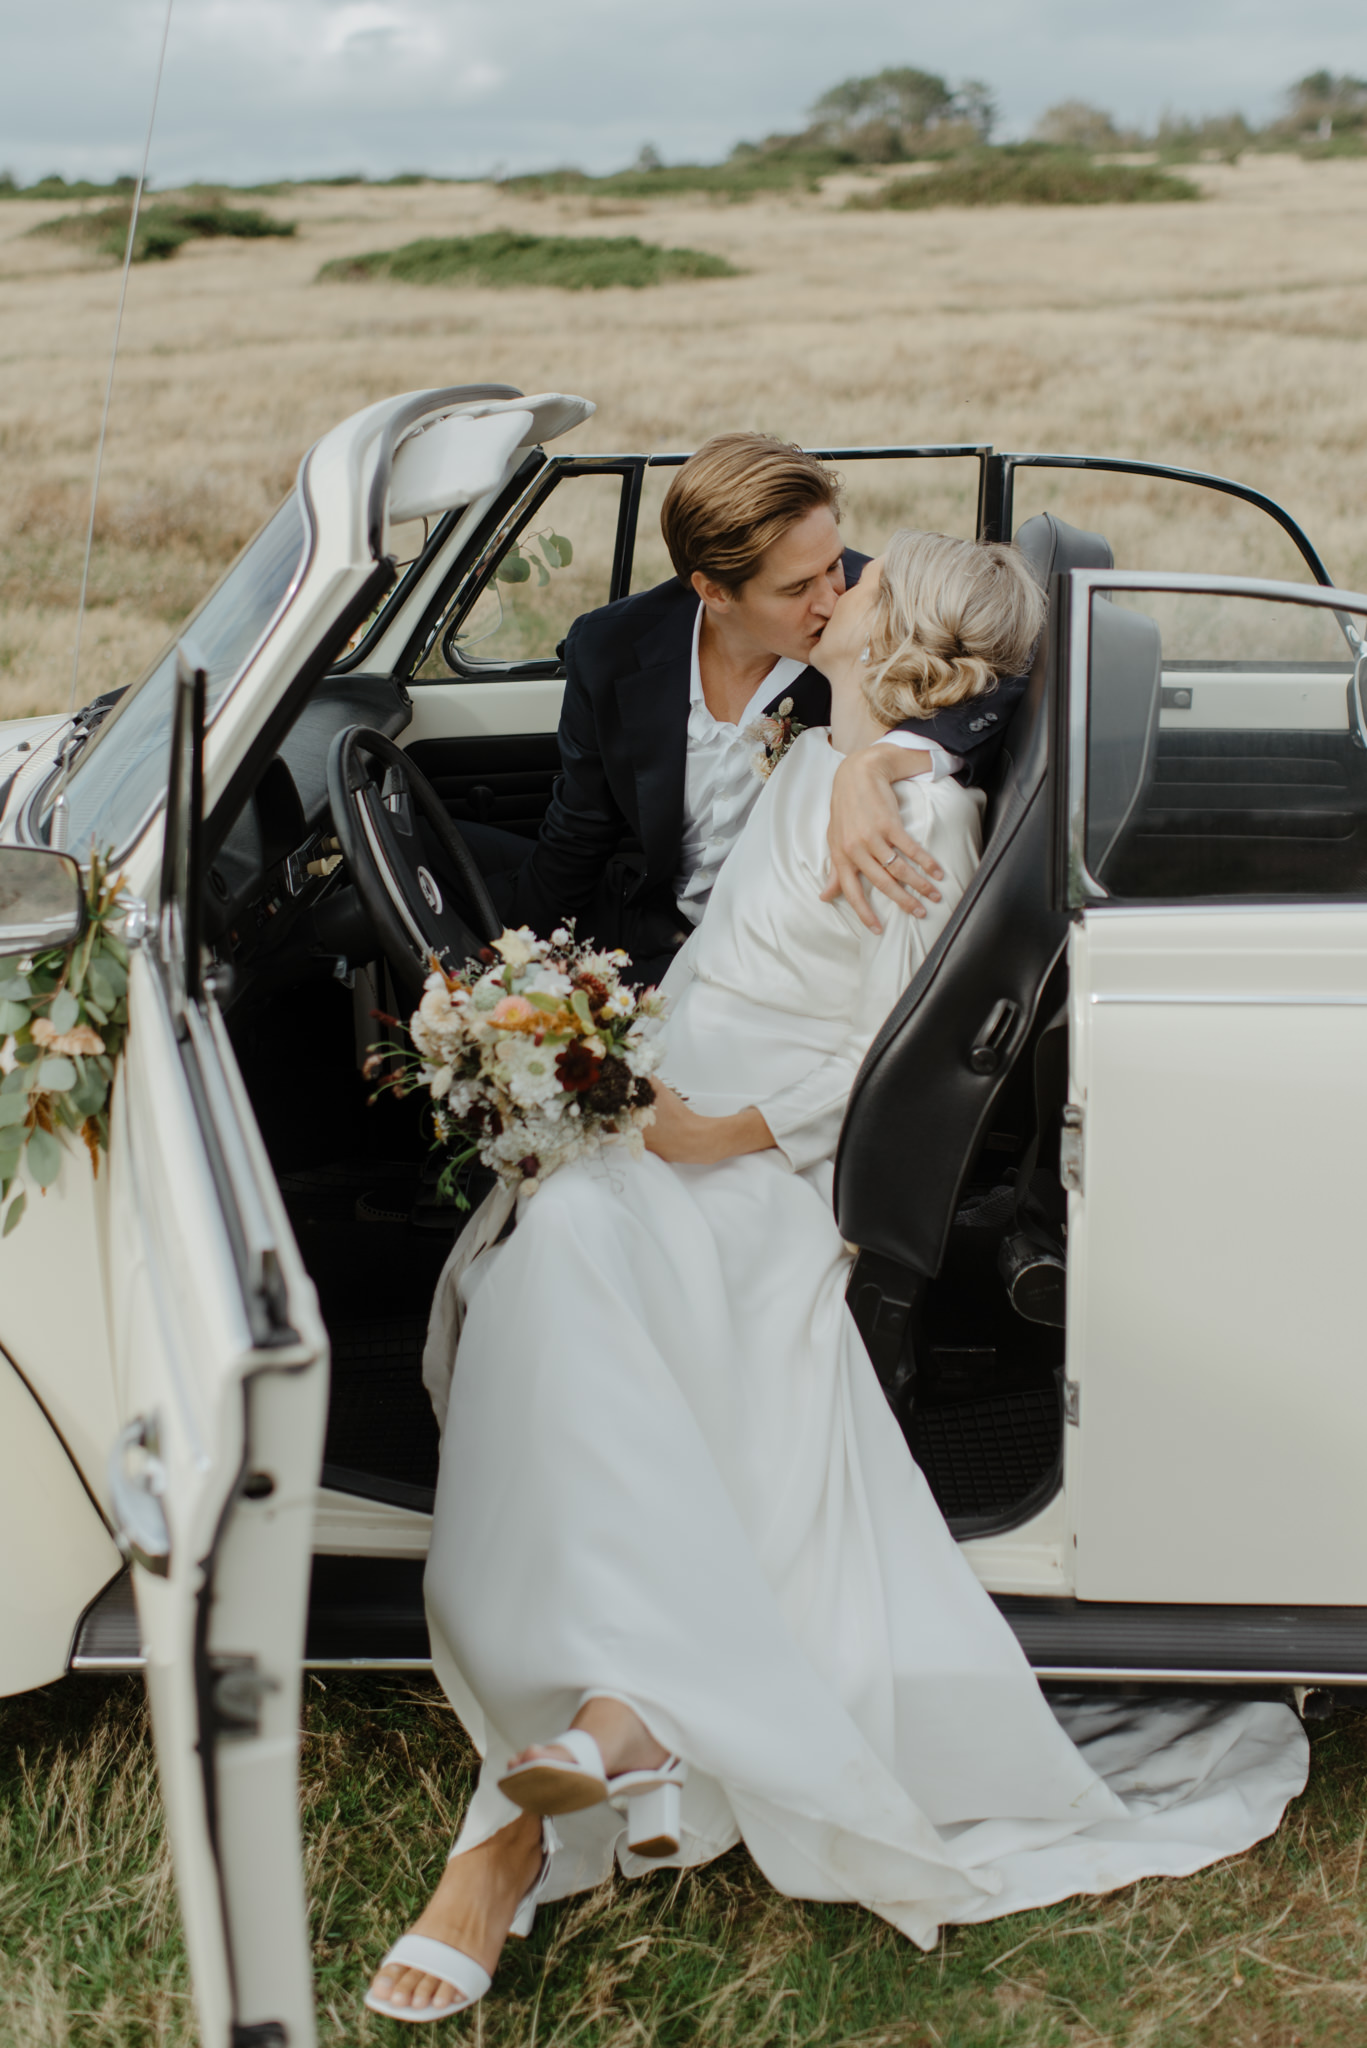 Chic newlyweds posing in their car